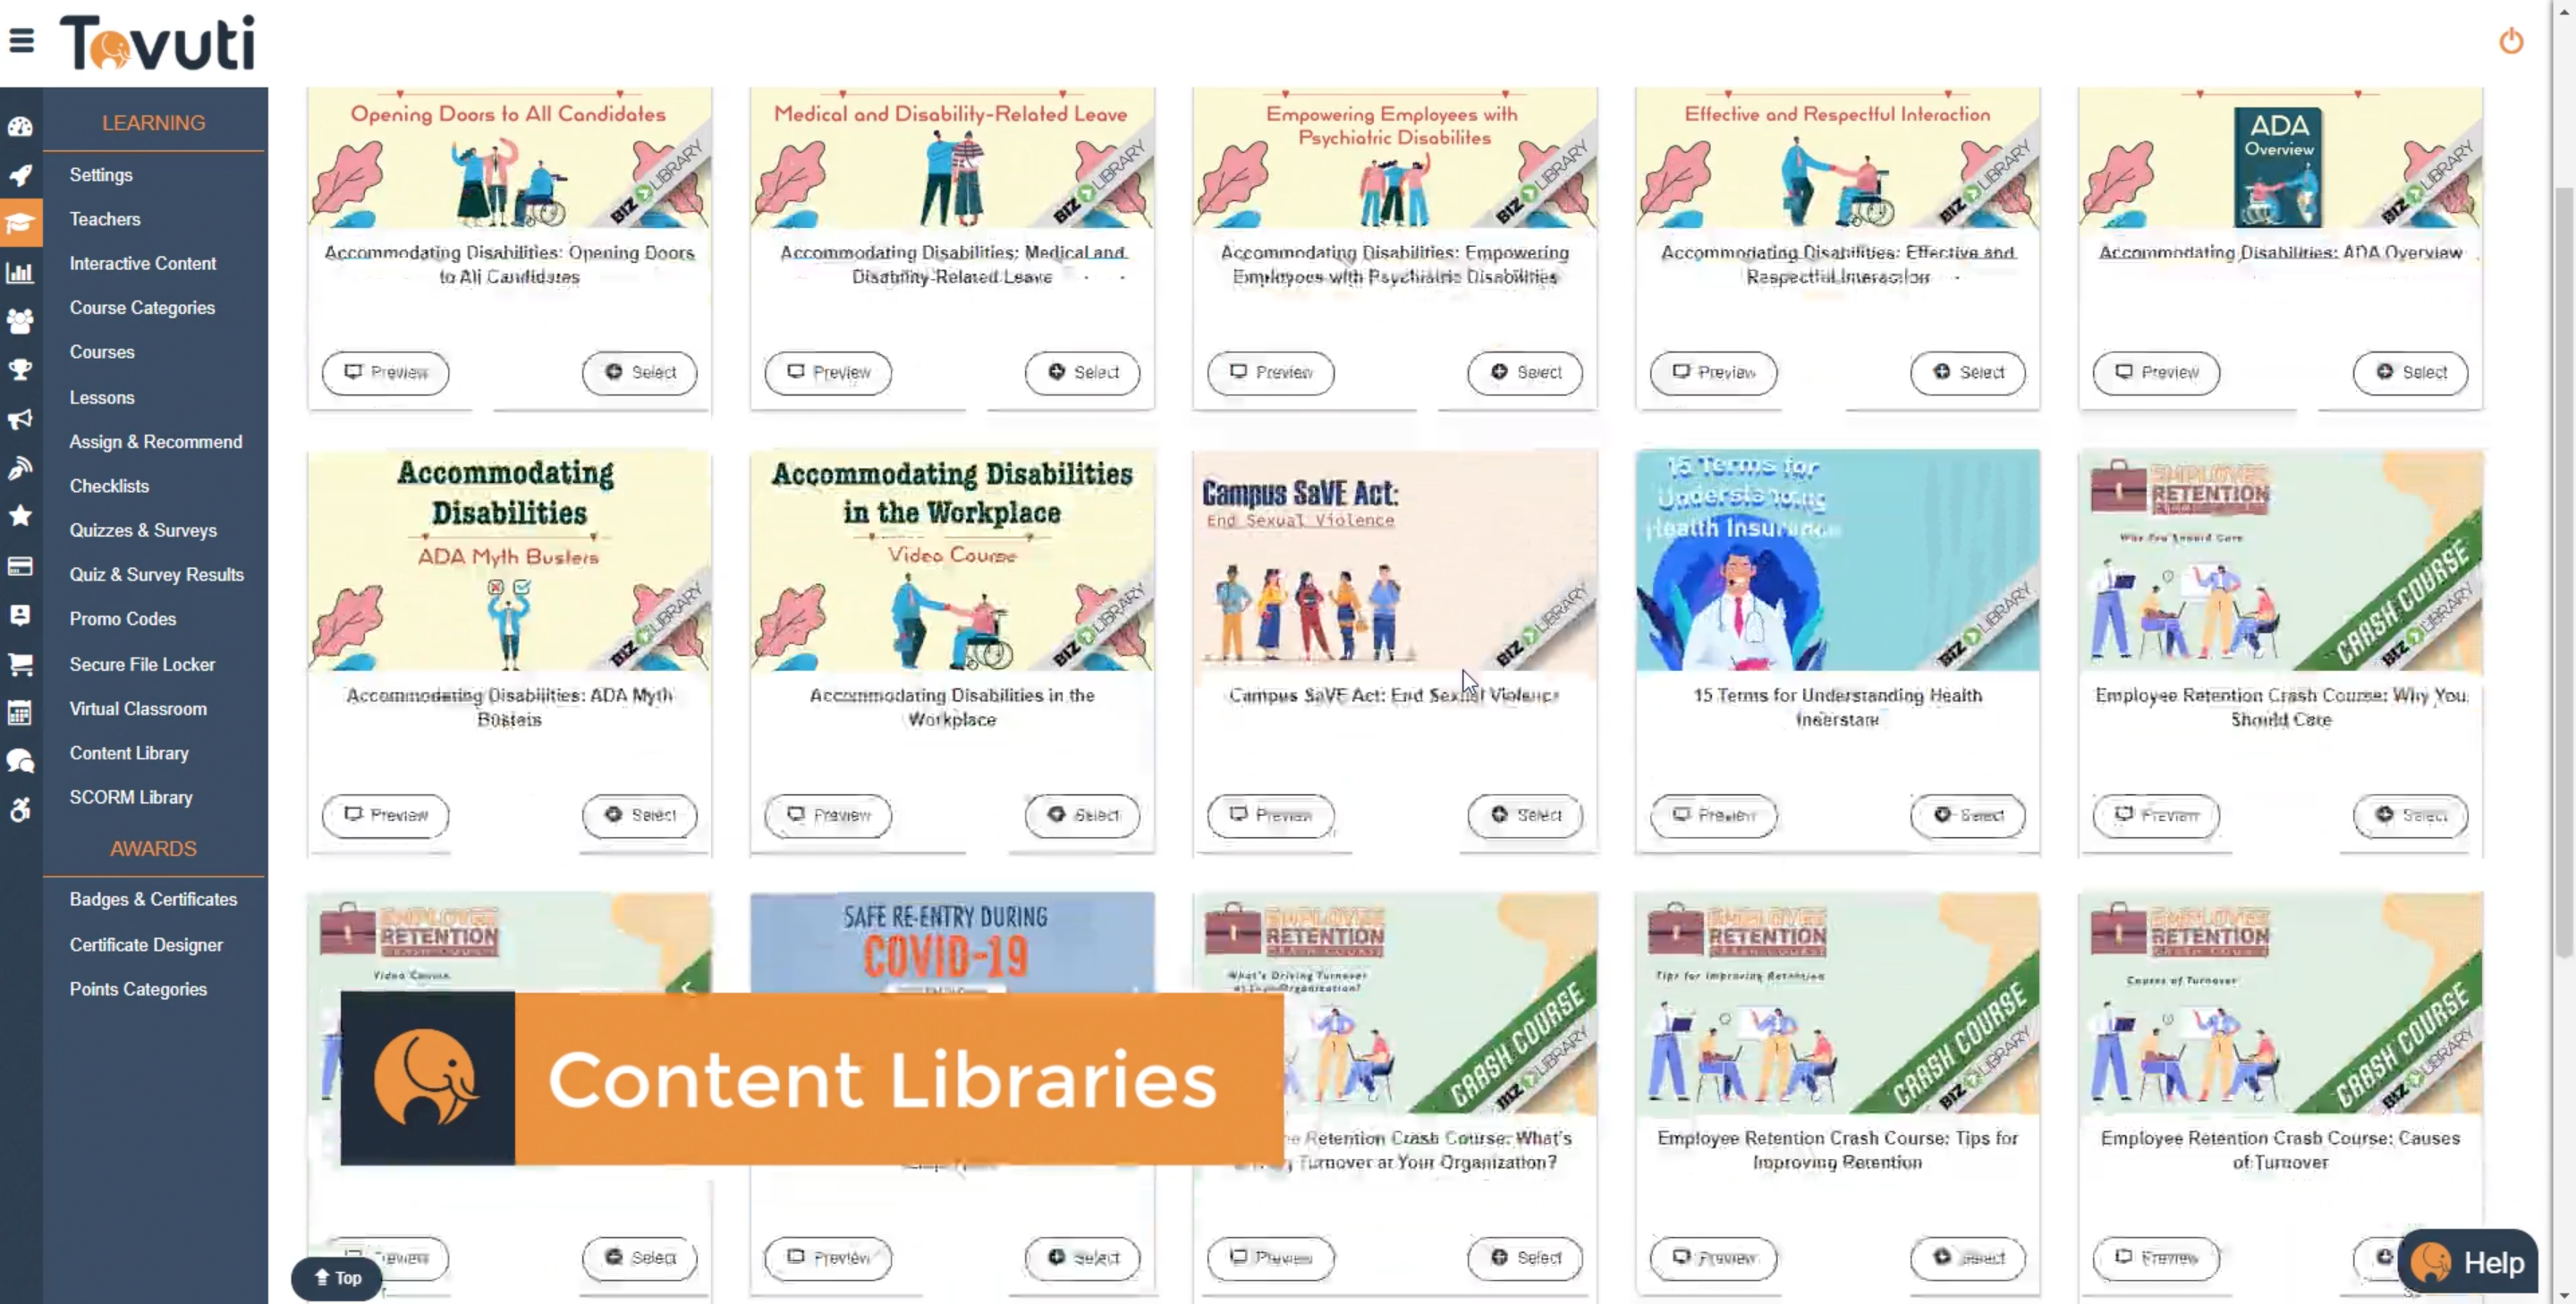 A content library in Tovuti where users can upload custom content